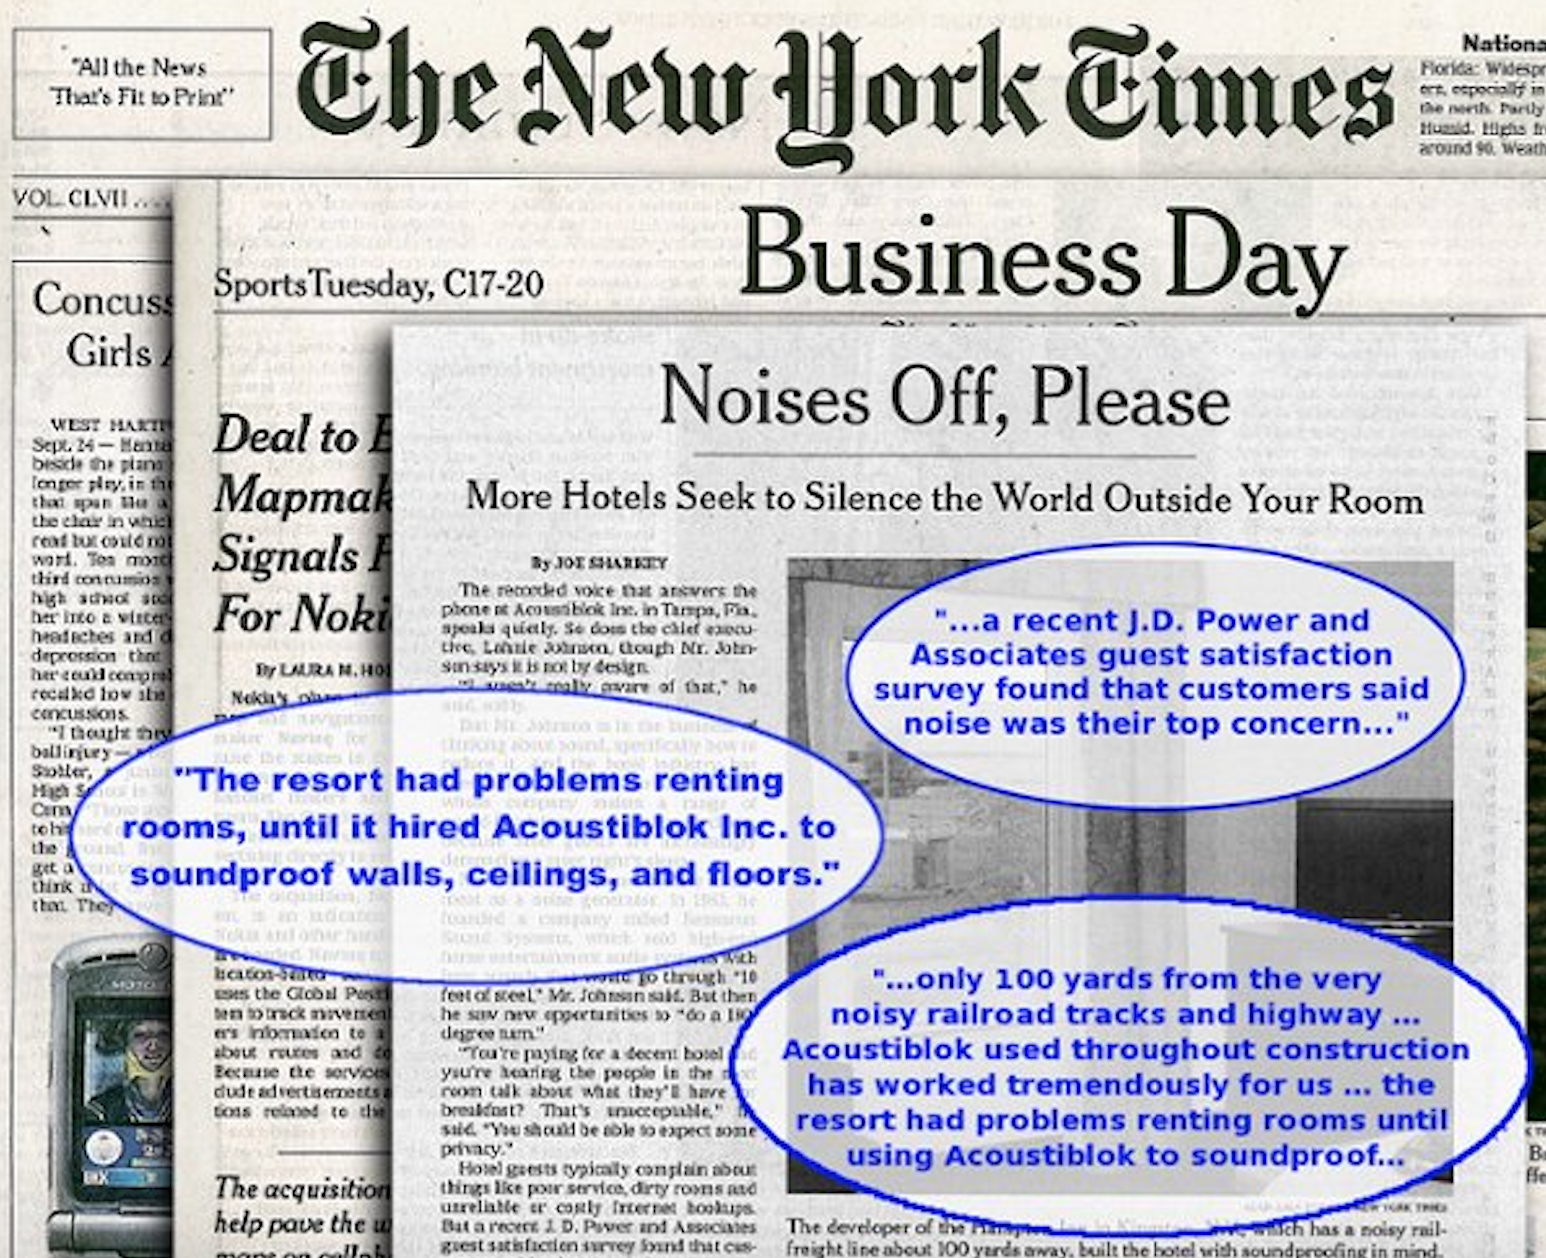 New York Times - Business Day Hotels